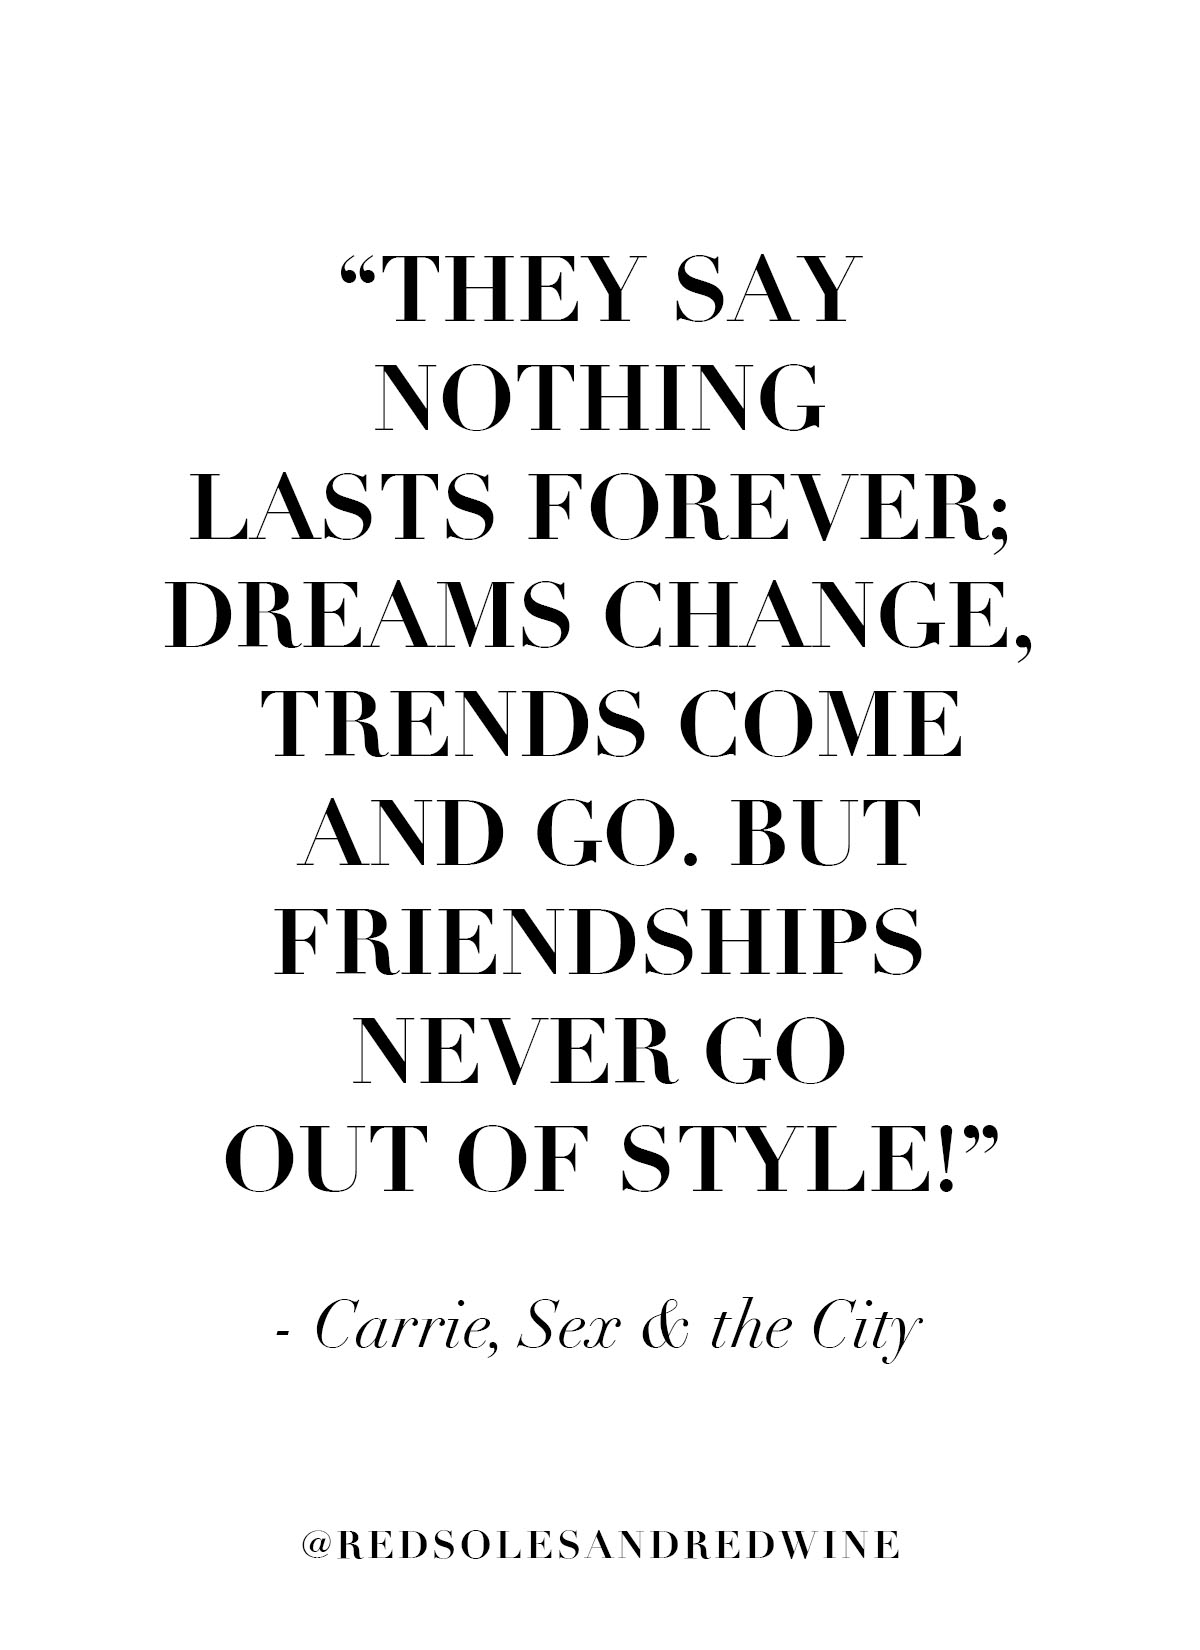 carrie bradshaw quote, carrie Bradshaw quotes, sex and the city quotes, friendships never go out of style quote, best friend quotes, women quotes, galentines day quotes, single girl quotes, Red Soles and Red Wine, Jennifer Worman